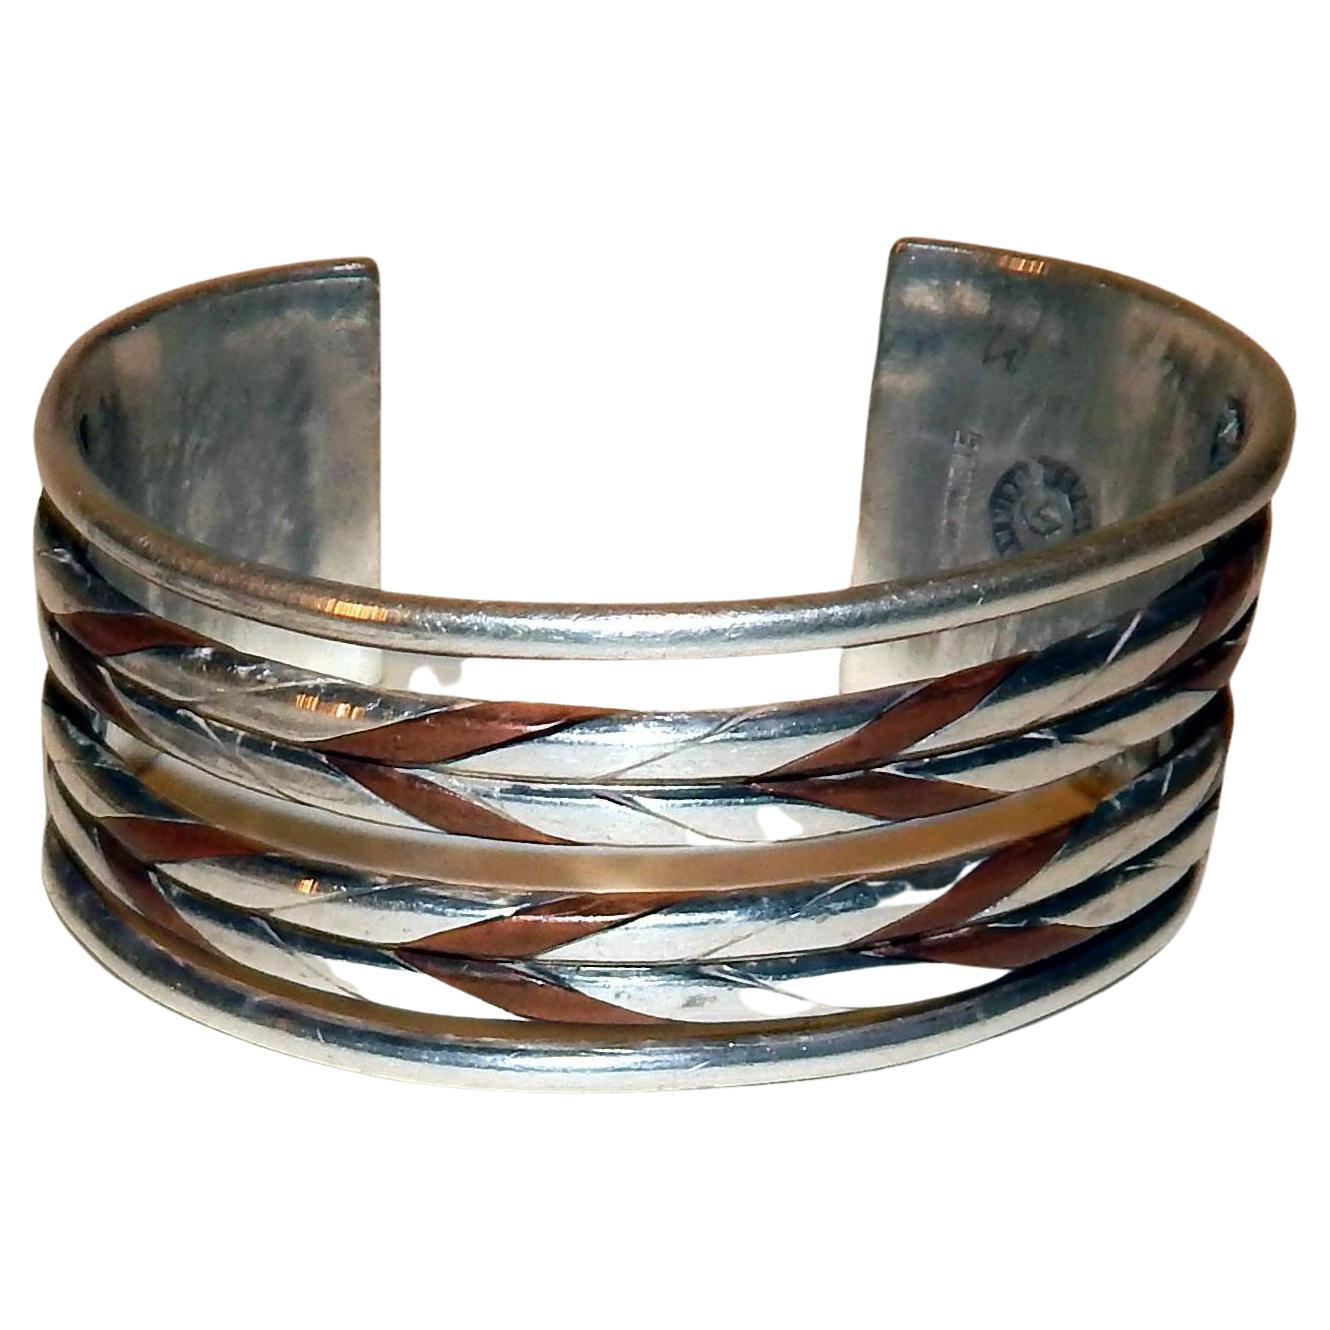 William Spratling Taxco Mexican Silver and Copper Cuff Bracelet, Modernist